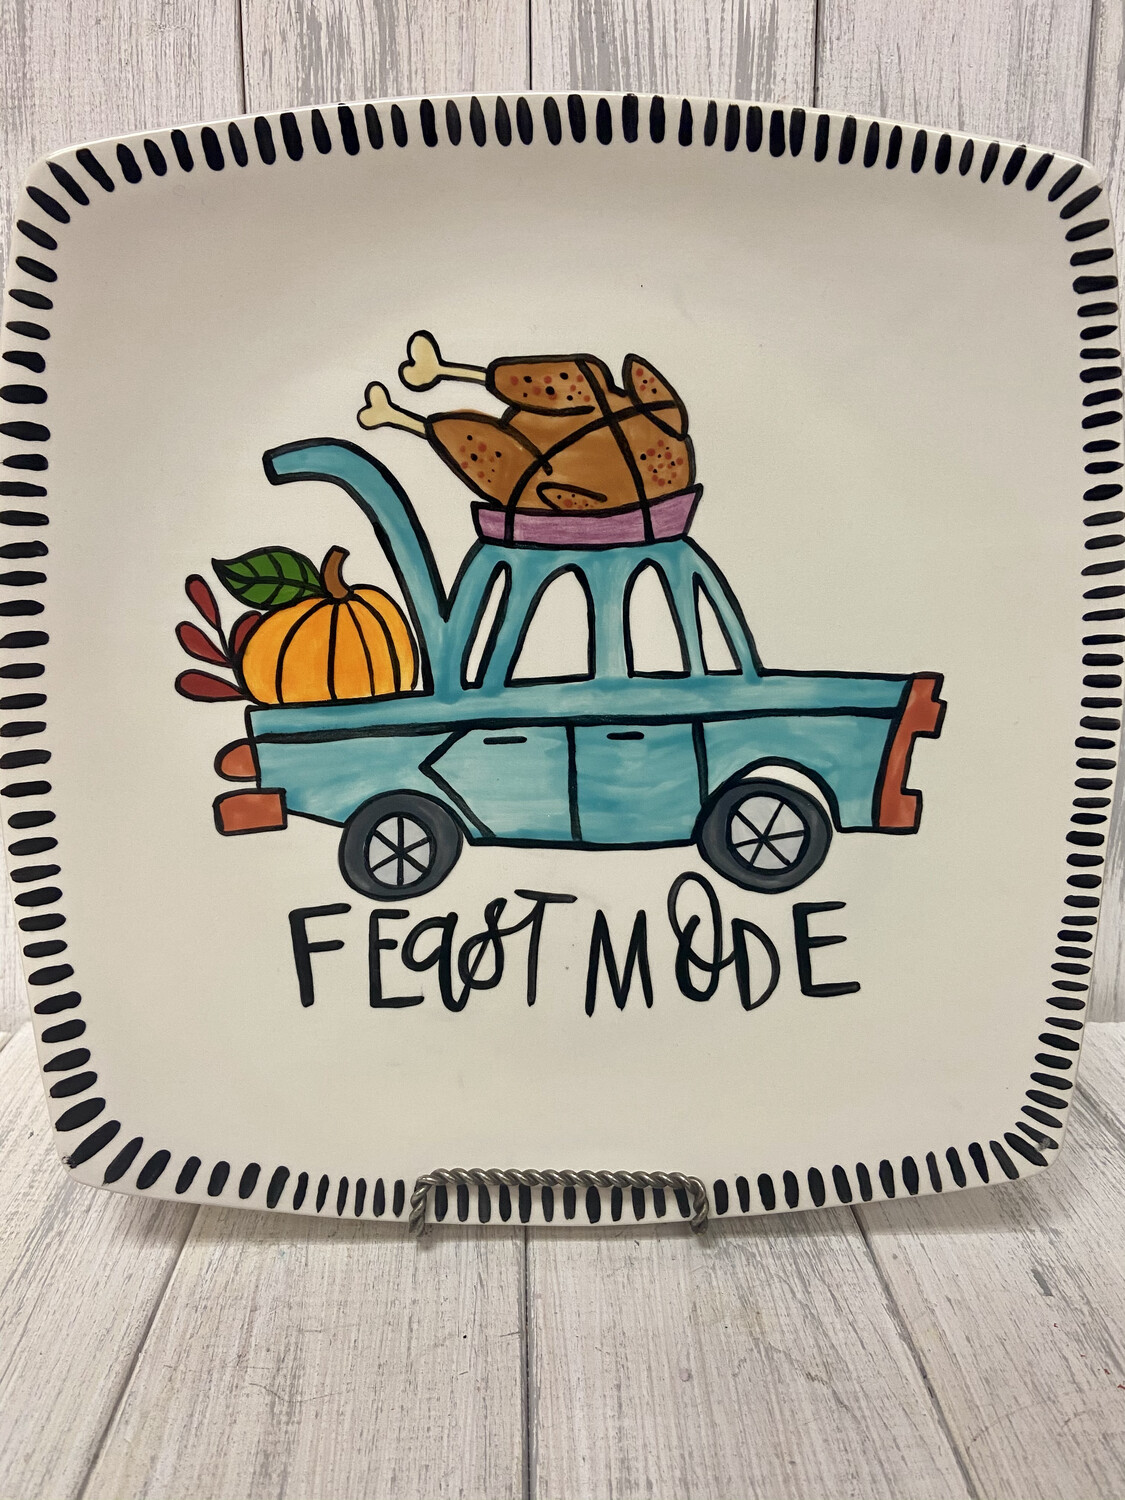 Feast Mode Plate To-Go Kit